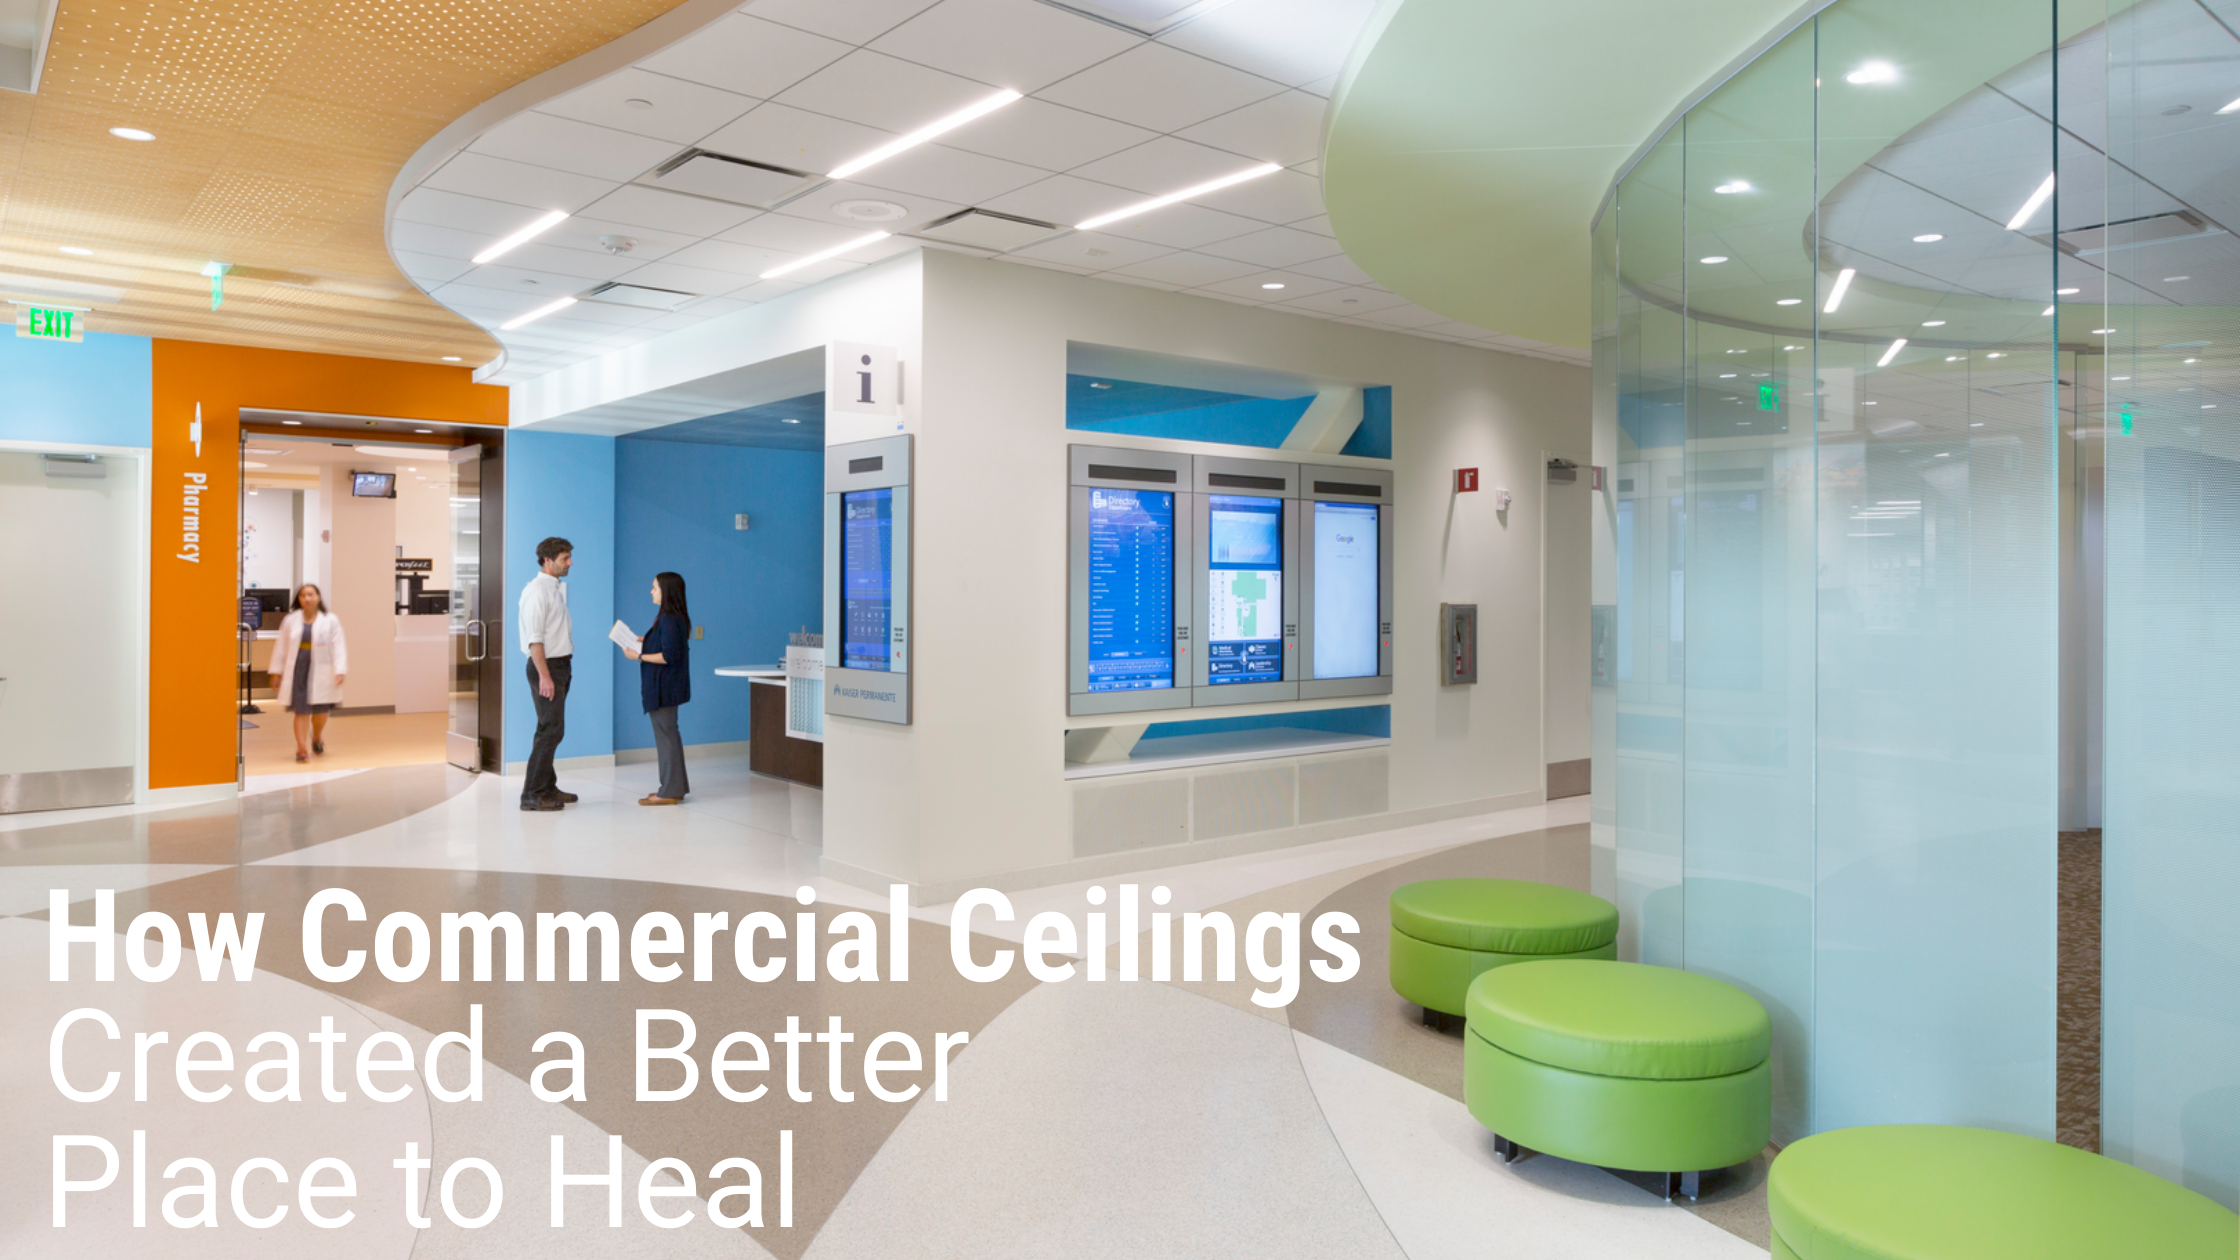 How Commercial Ceilings Created a Better Place to Heal